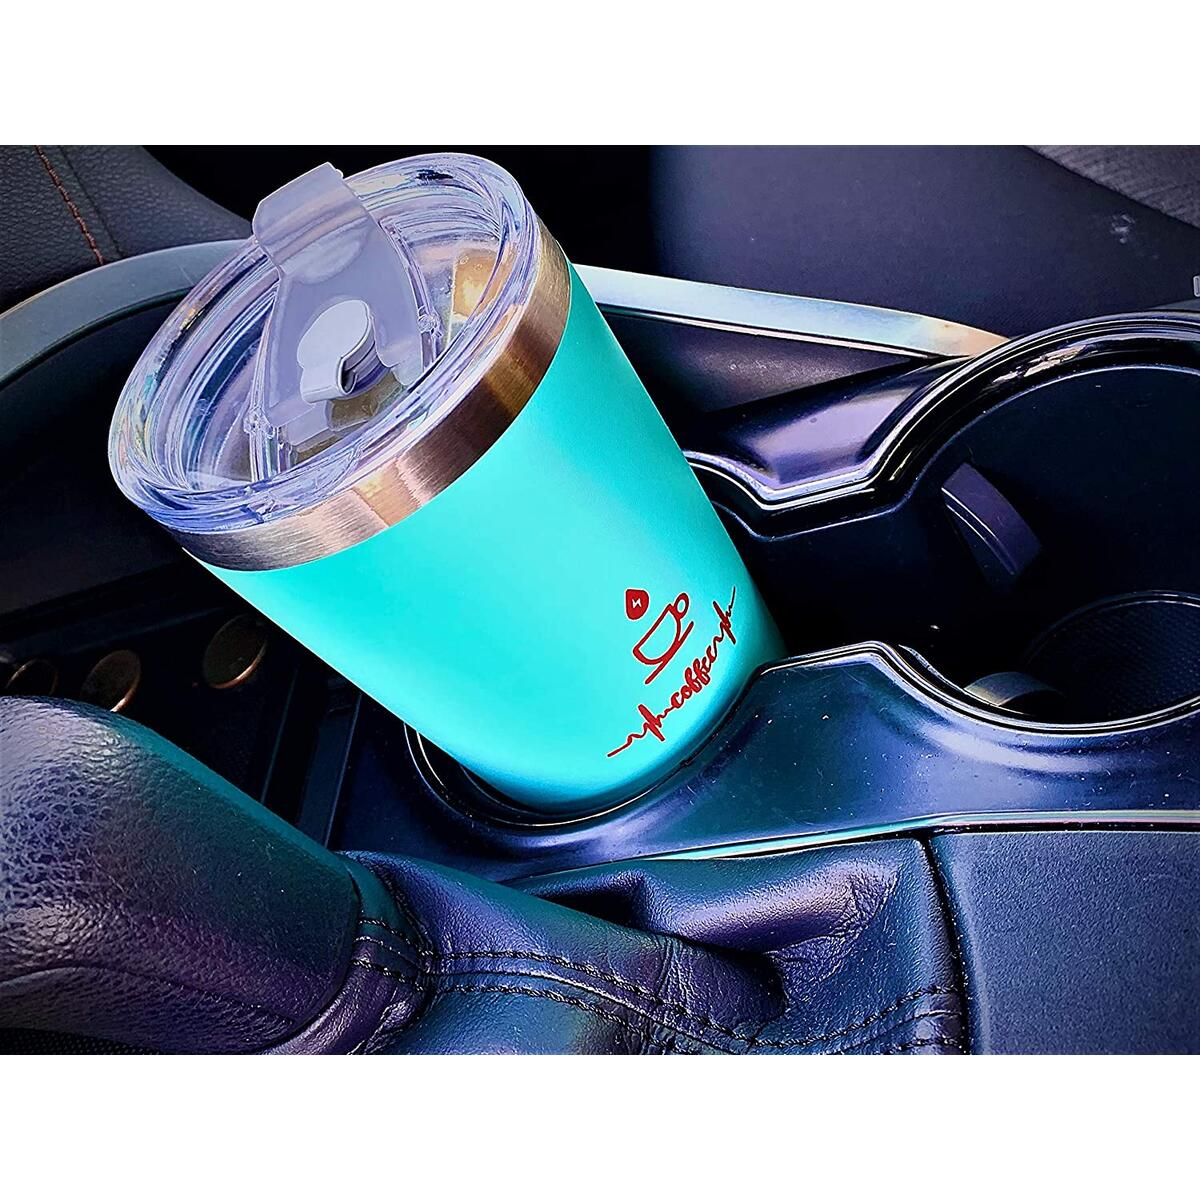 Maribus-FL 20oz Tumbler Stainless Steel Vacuum Insulated Mug with Lid, Double Wall Travel Mug, Durable Powder Coated Coffee Cup, Suitable for Ice Drinks and Hot Beverage (Light blue 1pack)